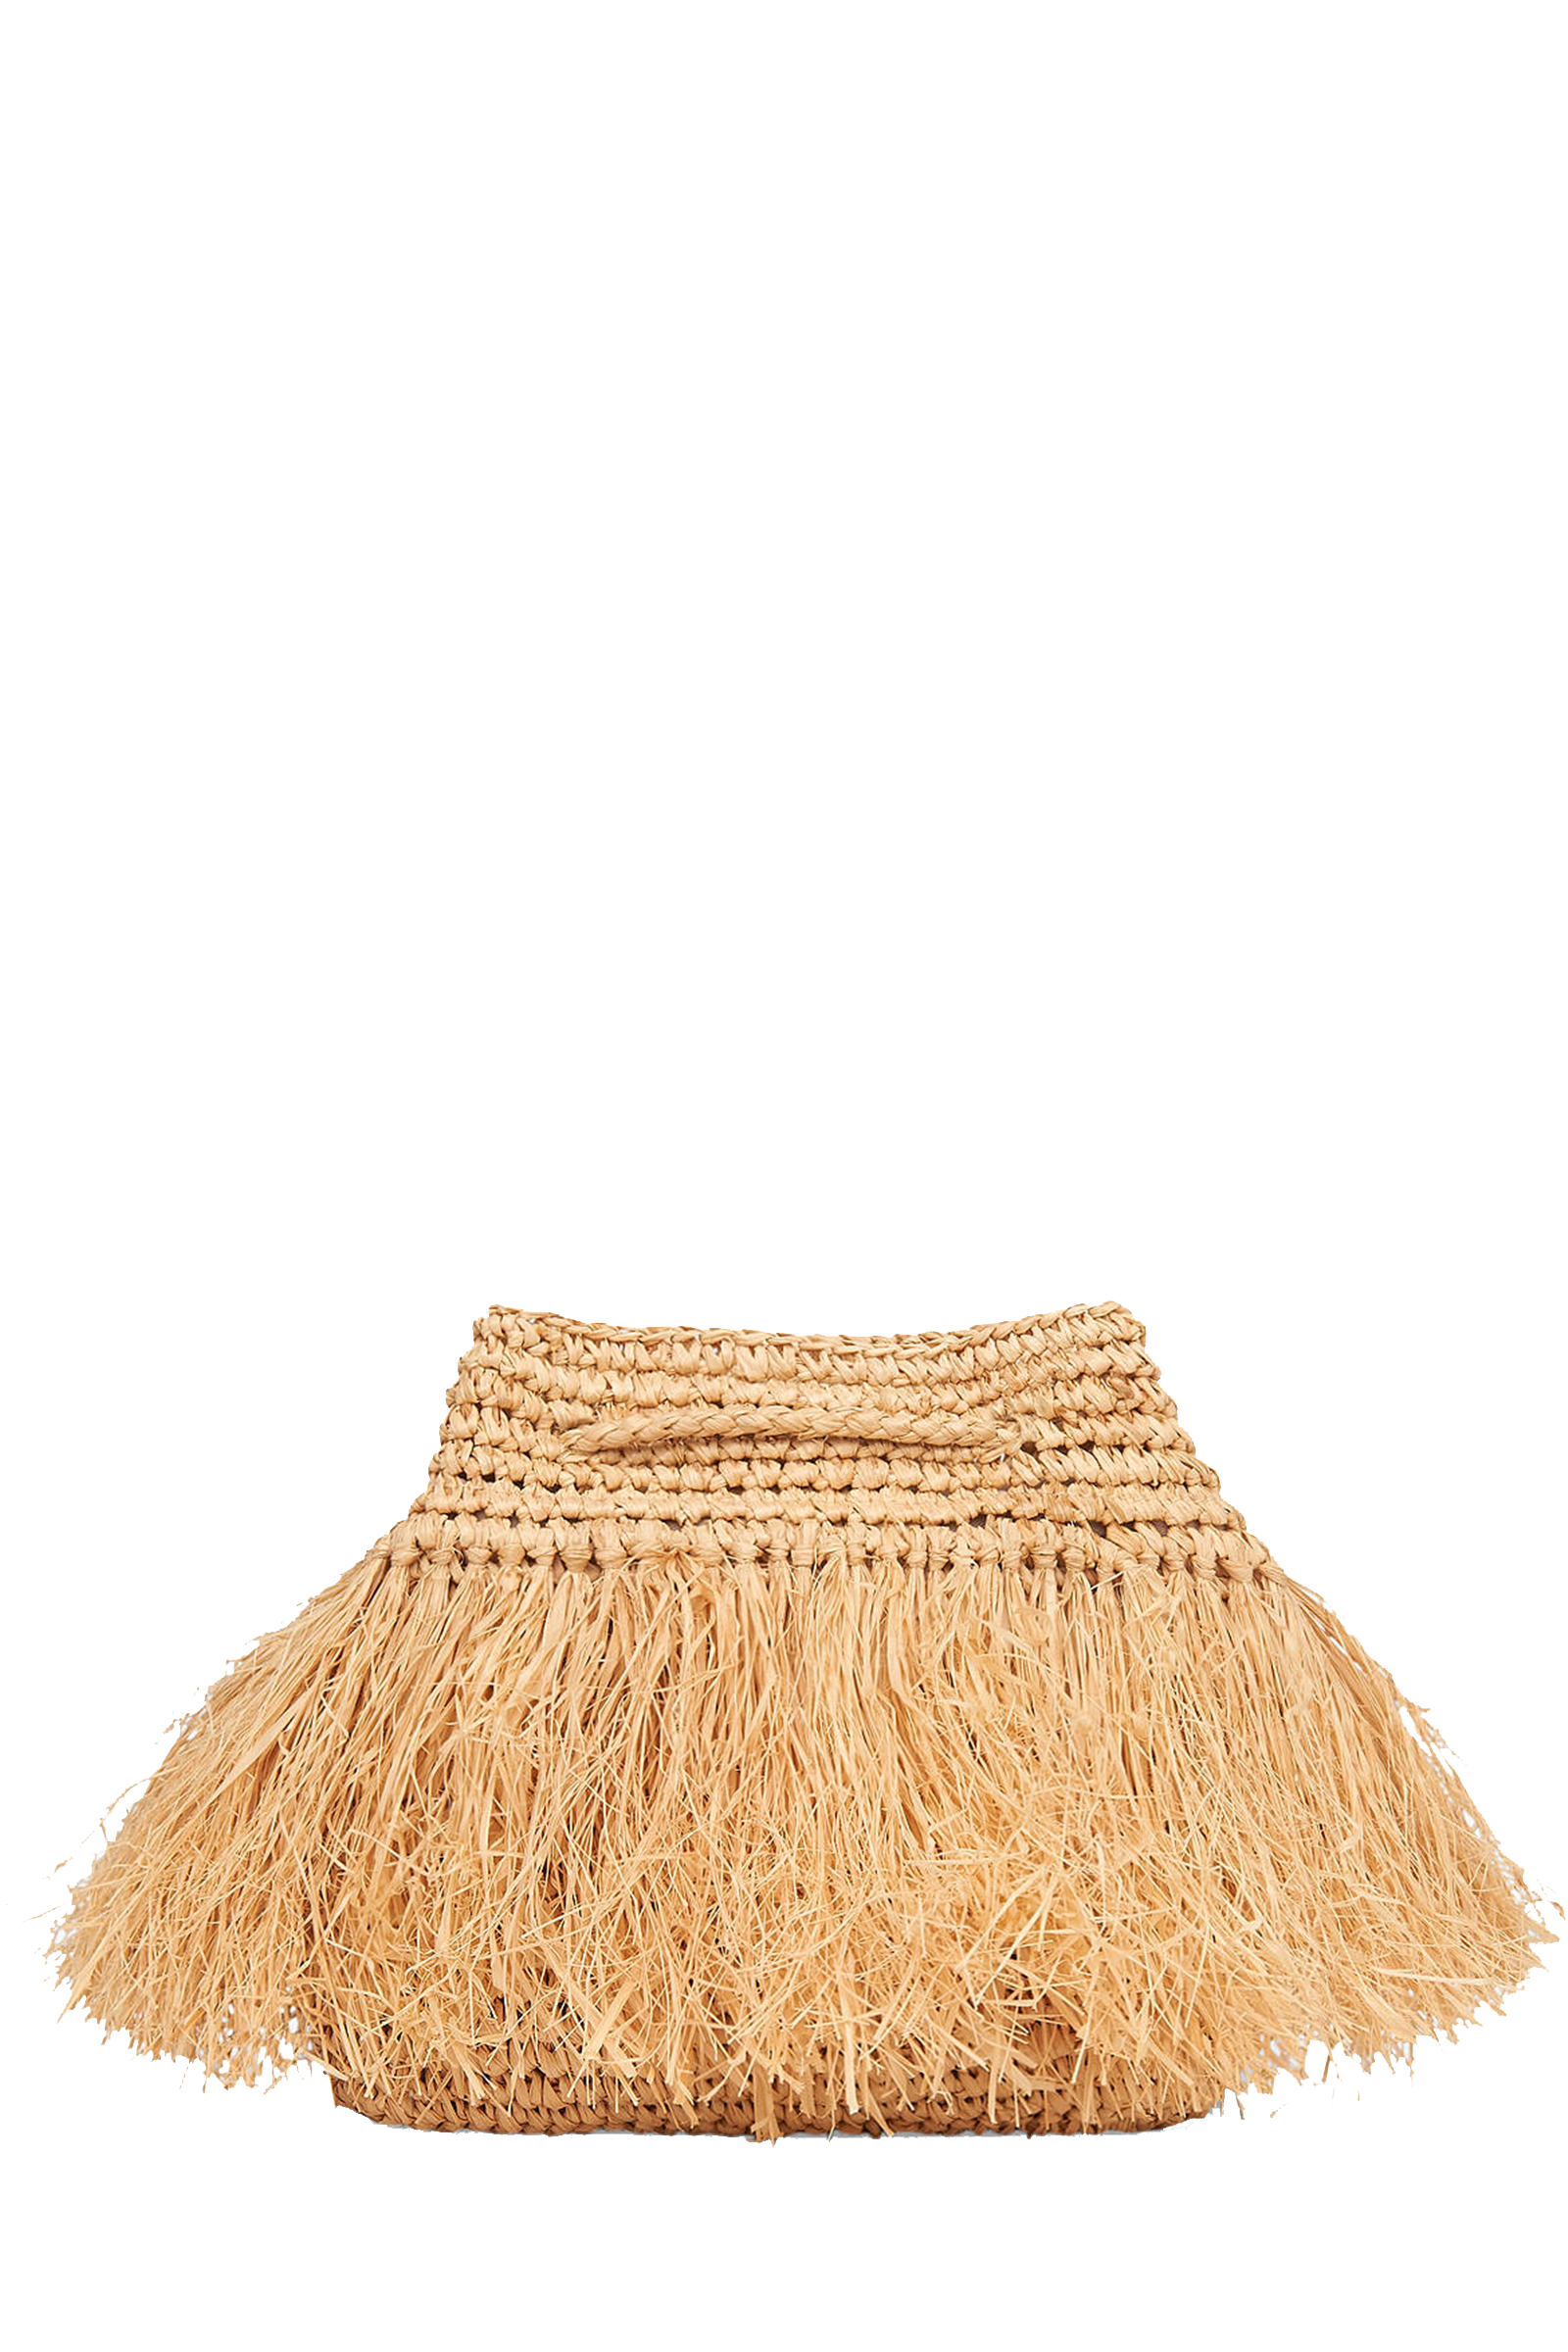 L.K.Bennett-Liza-Raffia-Shoulder-Bag